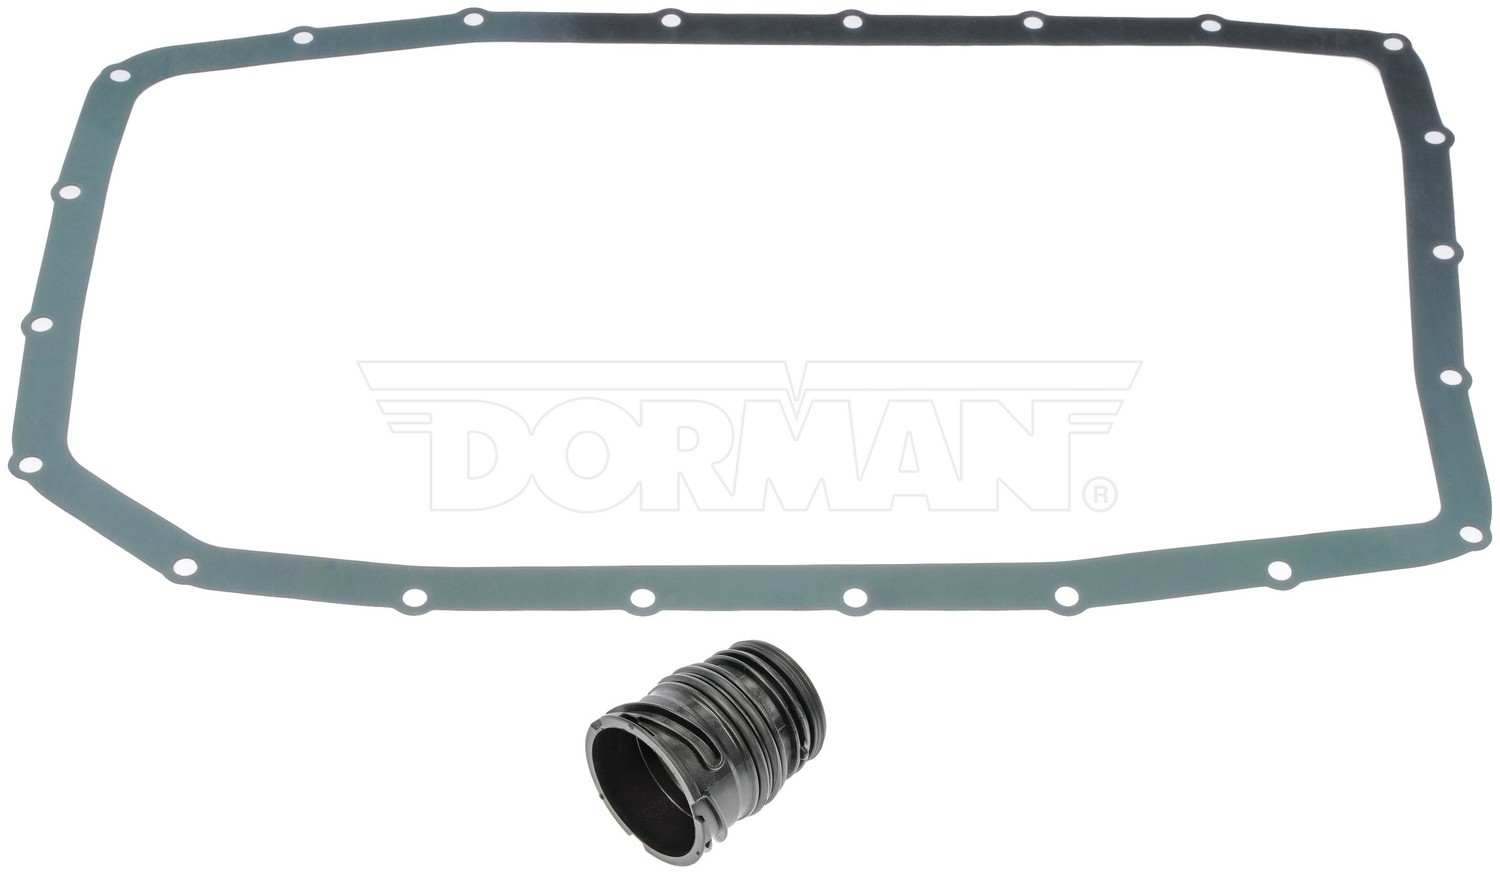 DORMAN OE SOLUTIONS - Automatic Transmission Valve Body Sealing Sleeve - DRE 917-138